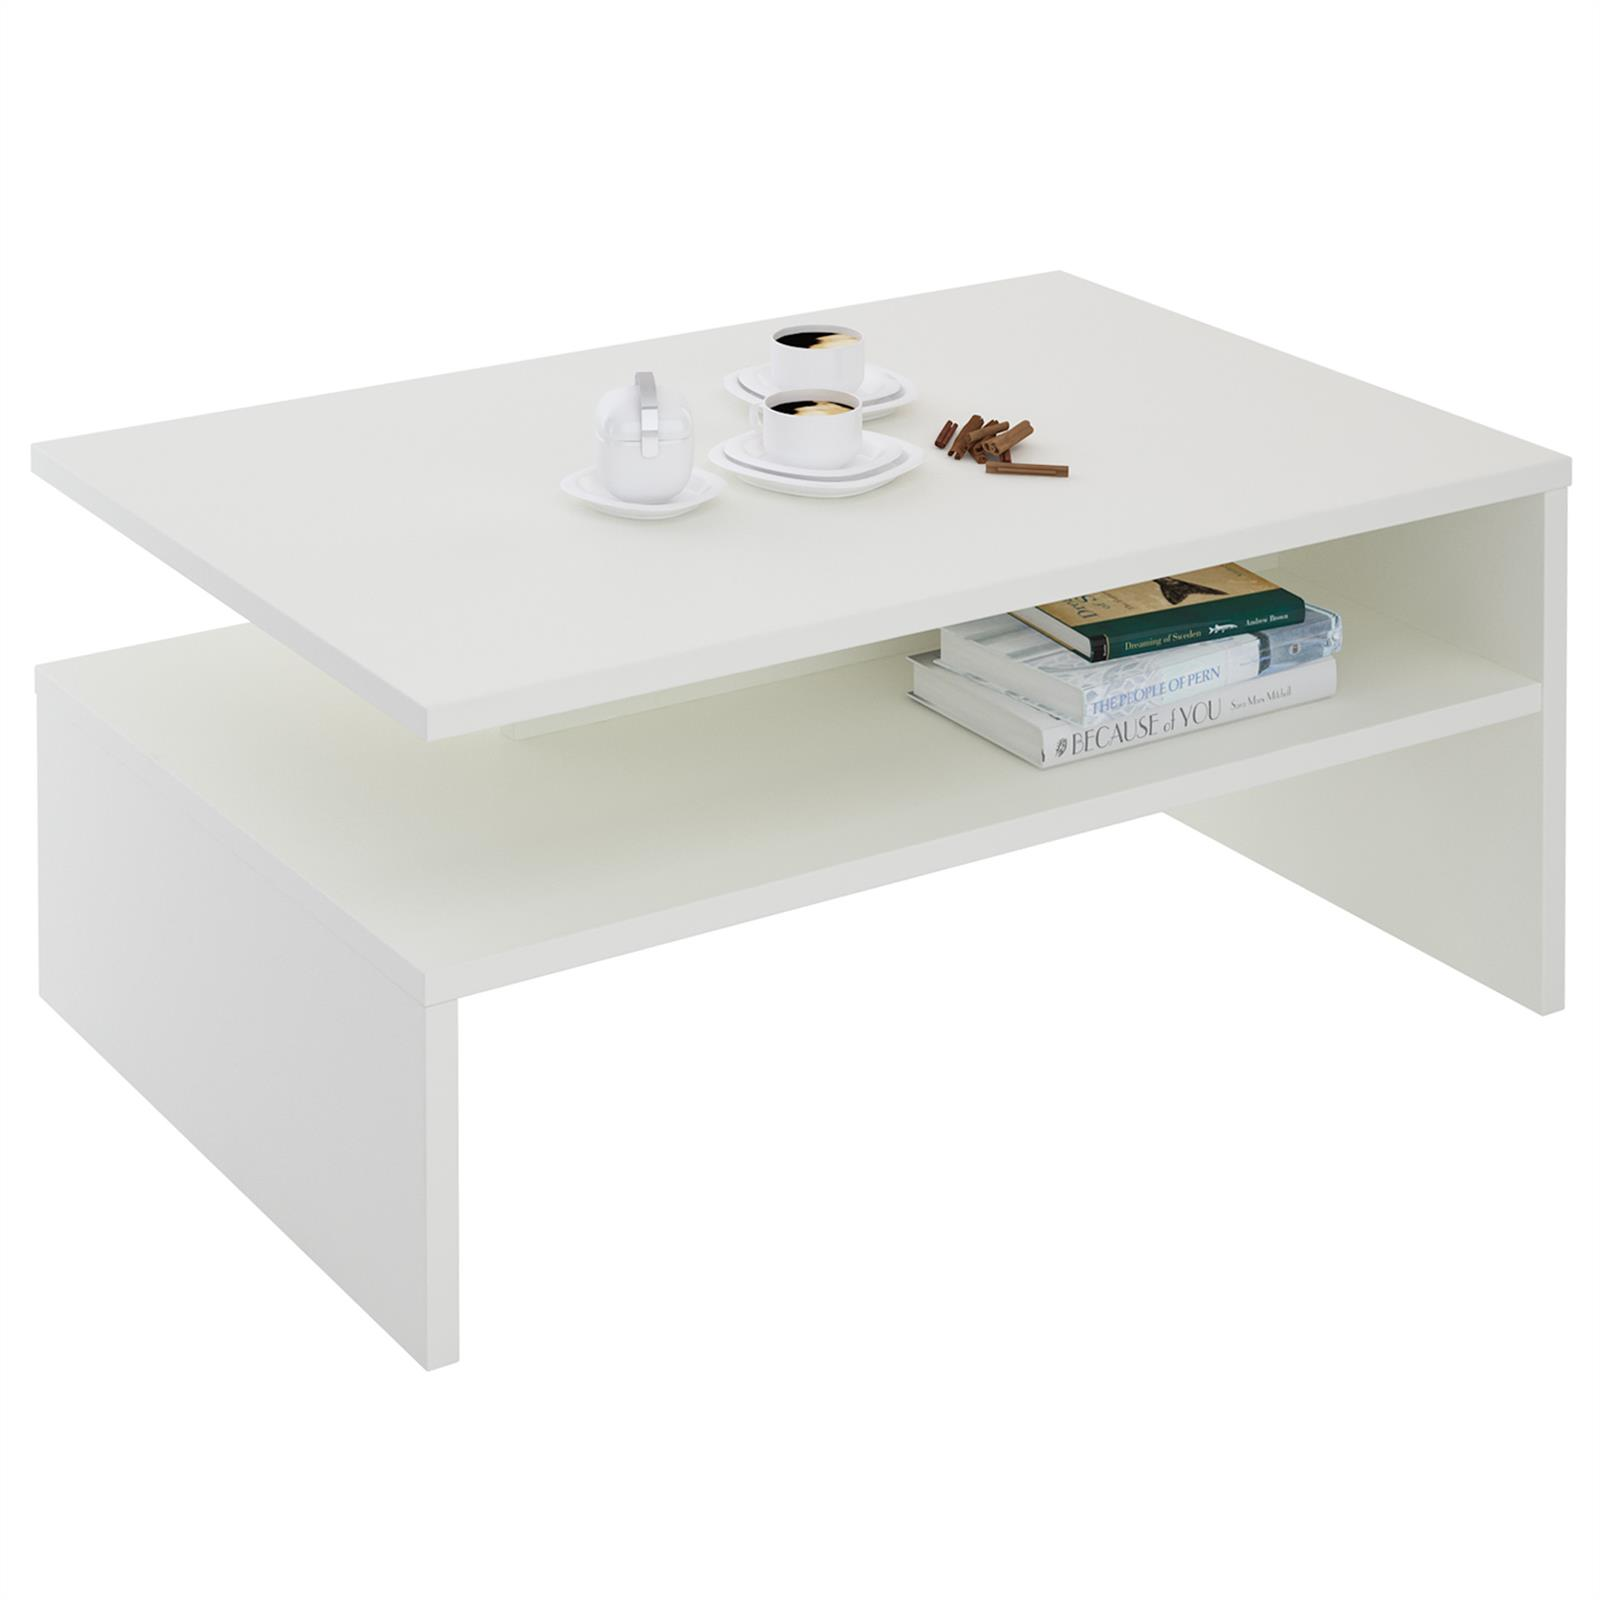 Table basse adelaide m lamin blanc mat mobil meubles for Meuble melamine blanc